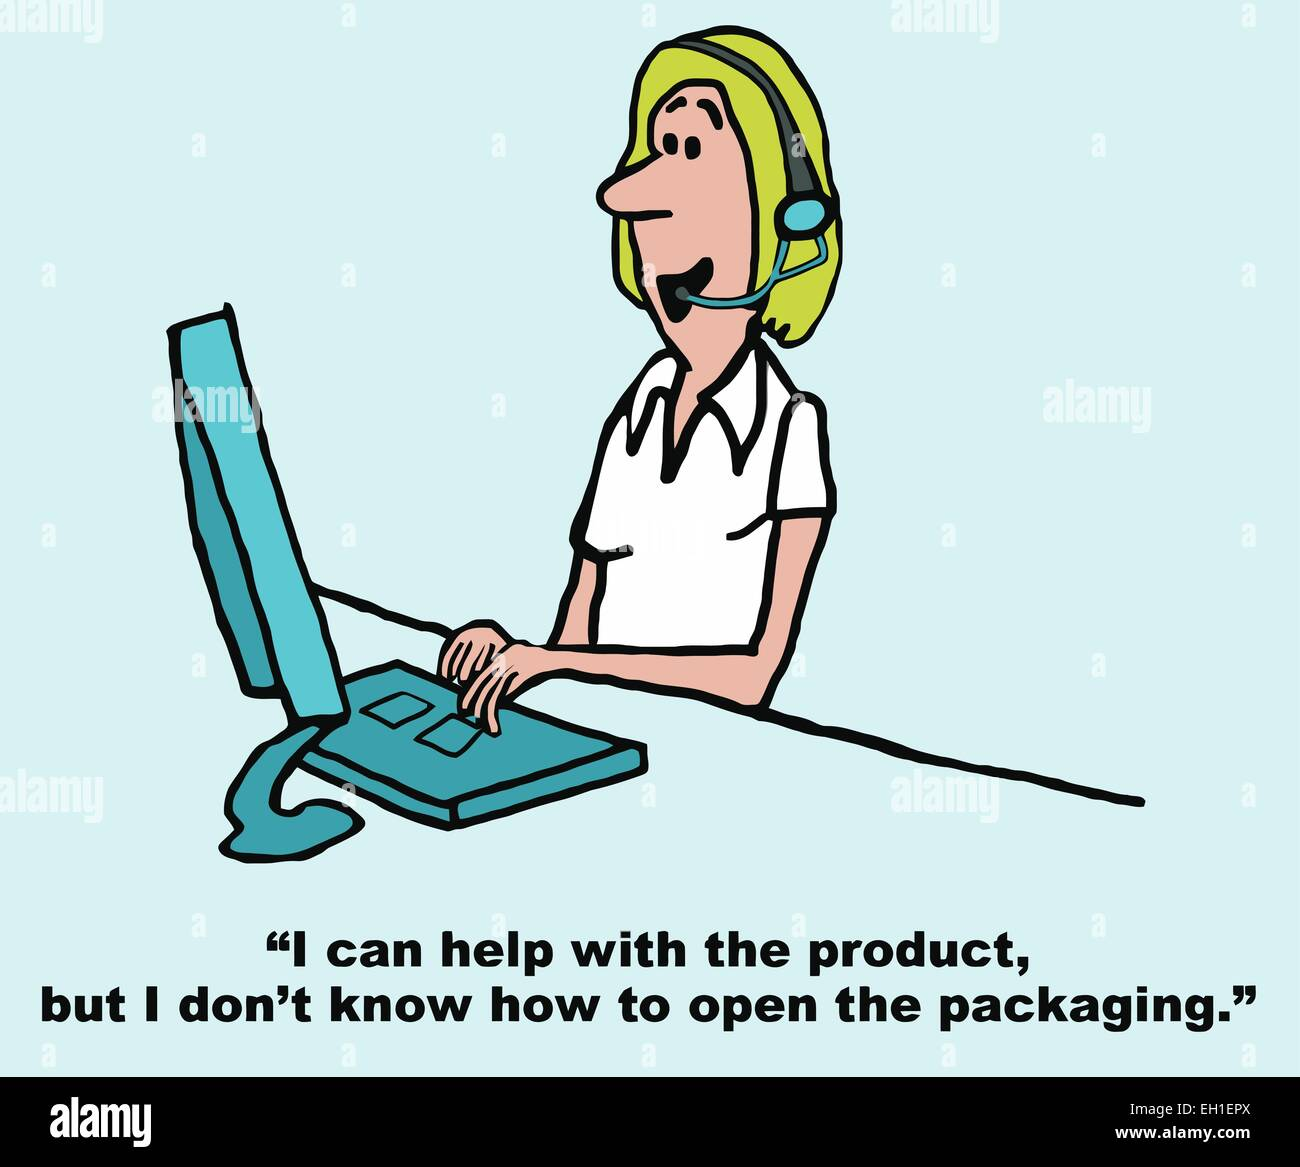 cartoon of customer service rep on phone customer i can help cartoon of customer service rep on phone customer i can help the product but i do not know how to open the packaging